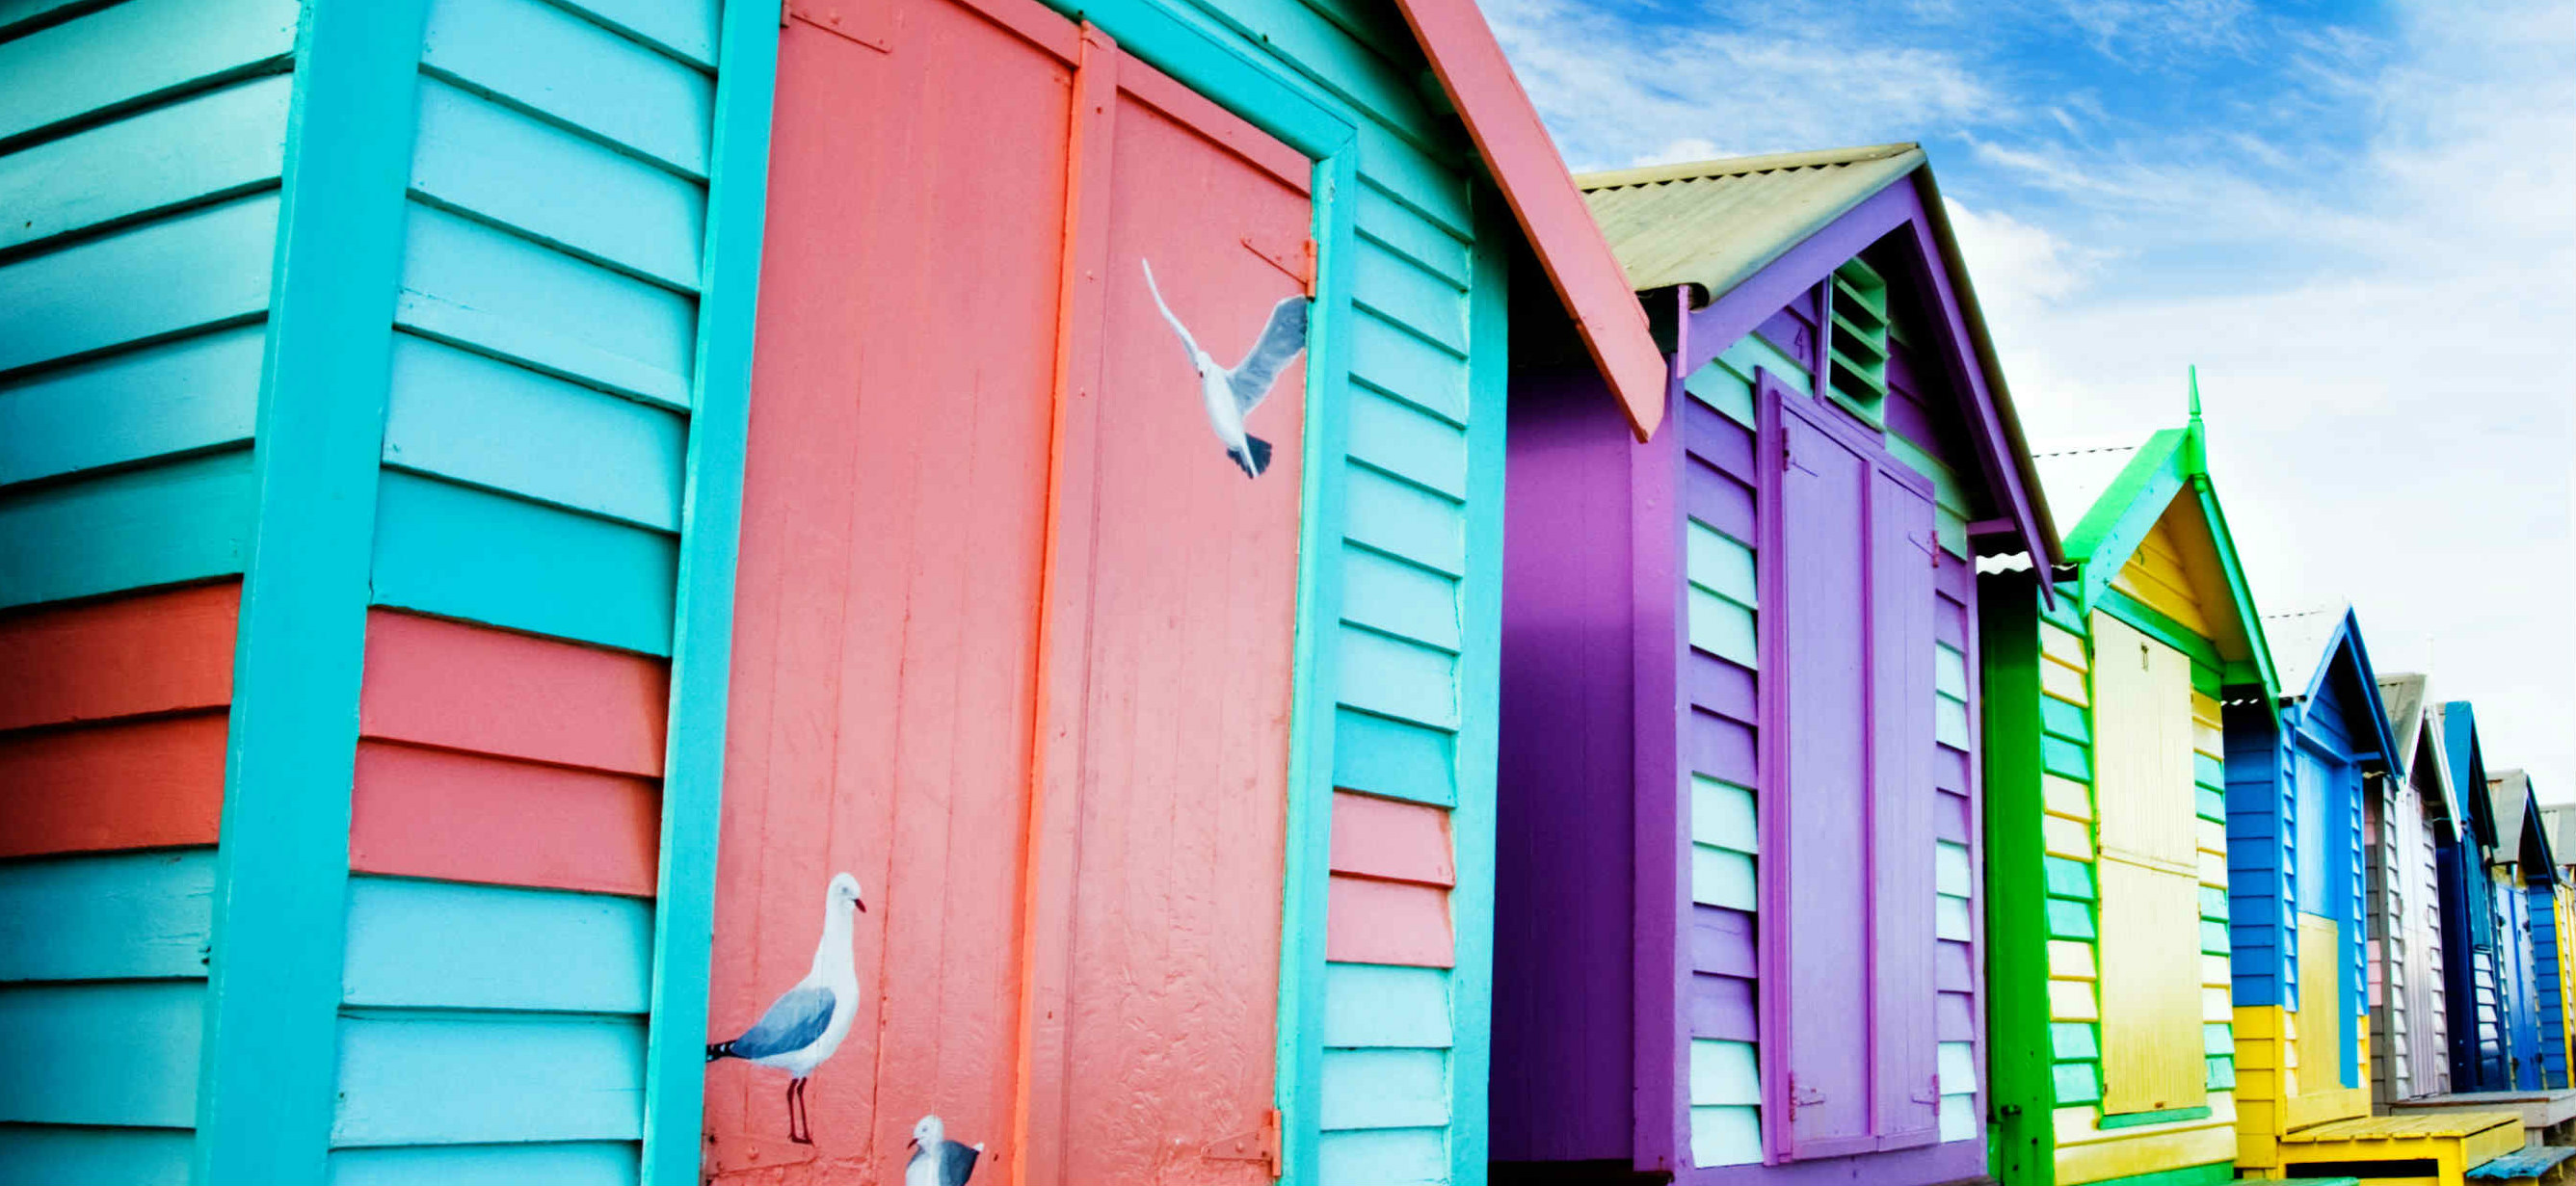 colourful houses in St. Kilda, Melbourne